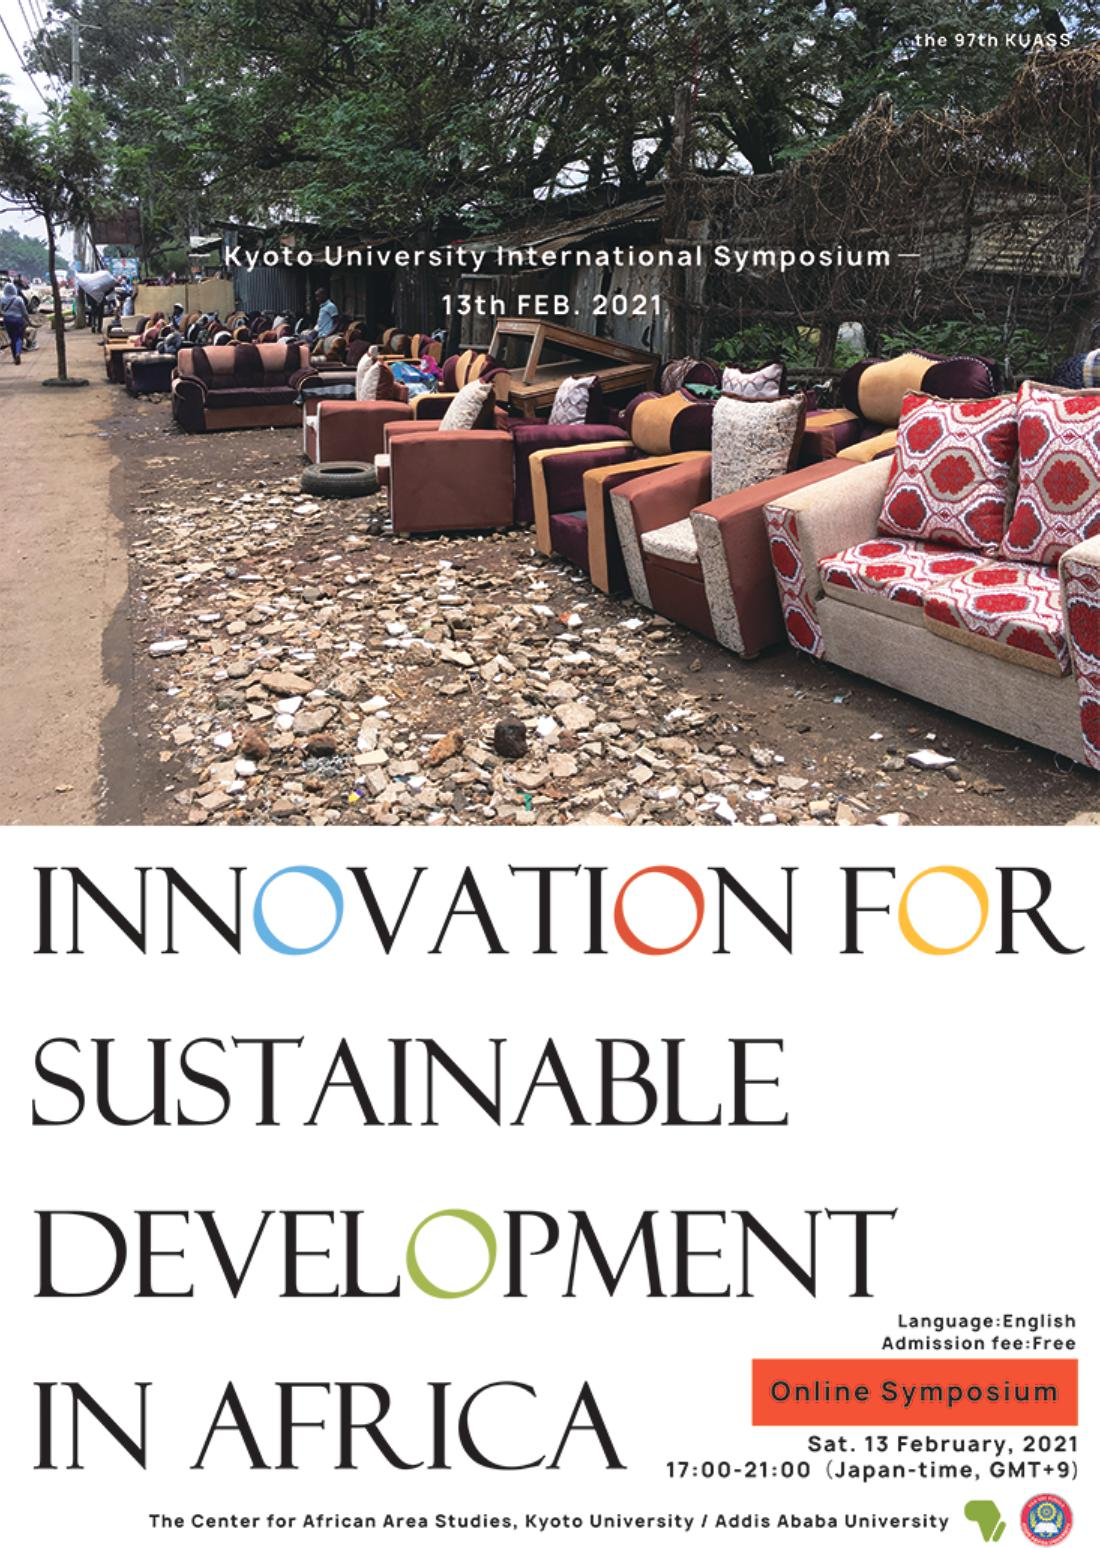 """Kyoto University International Symposium """"Innovation for Sustainable Development in Africa"""" (The 97th KUASS)"""